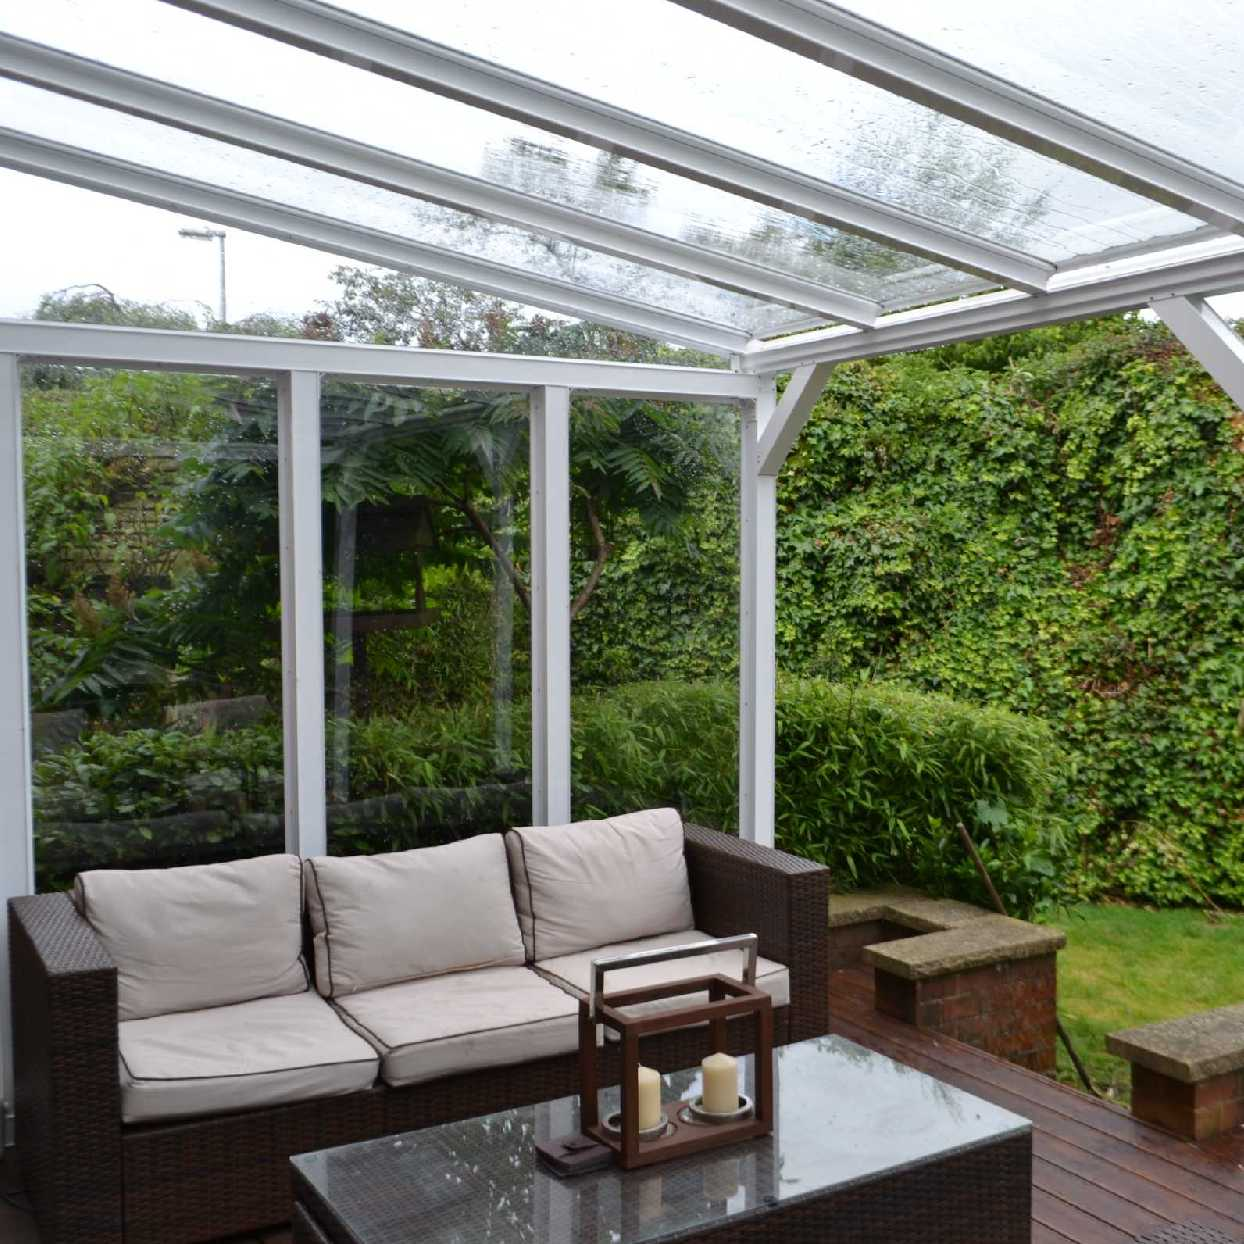 Great selection of Omega Smart Lean-To Canopy with 16mm Polycarbonate Glazing - 7.8m (W) x 3.5m (P), (4) Supporting Posts